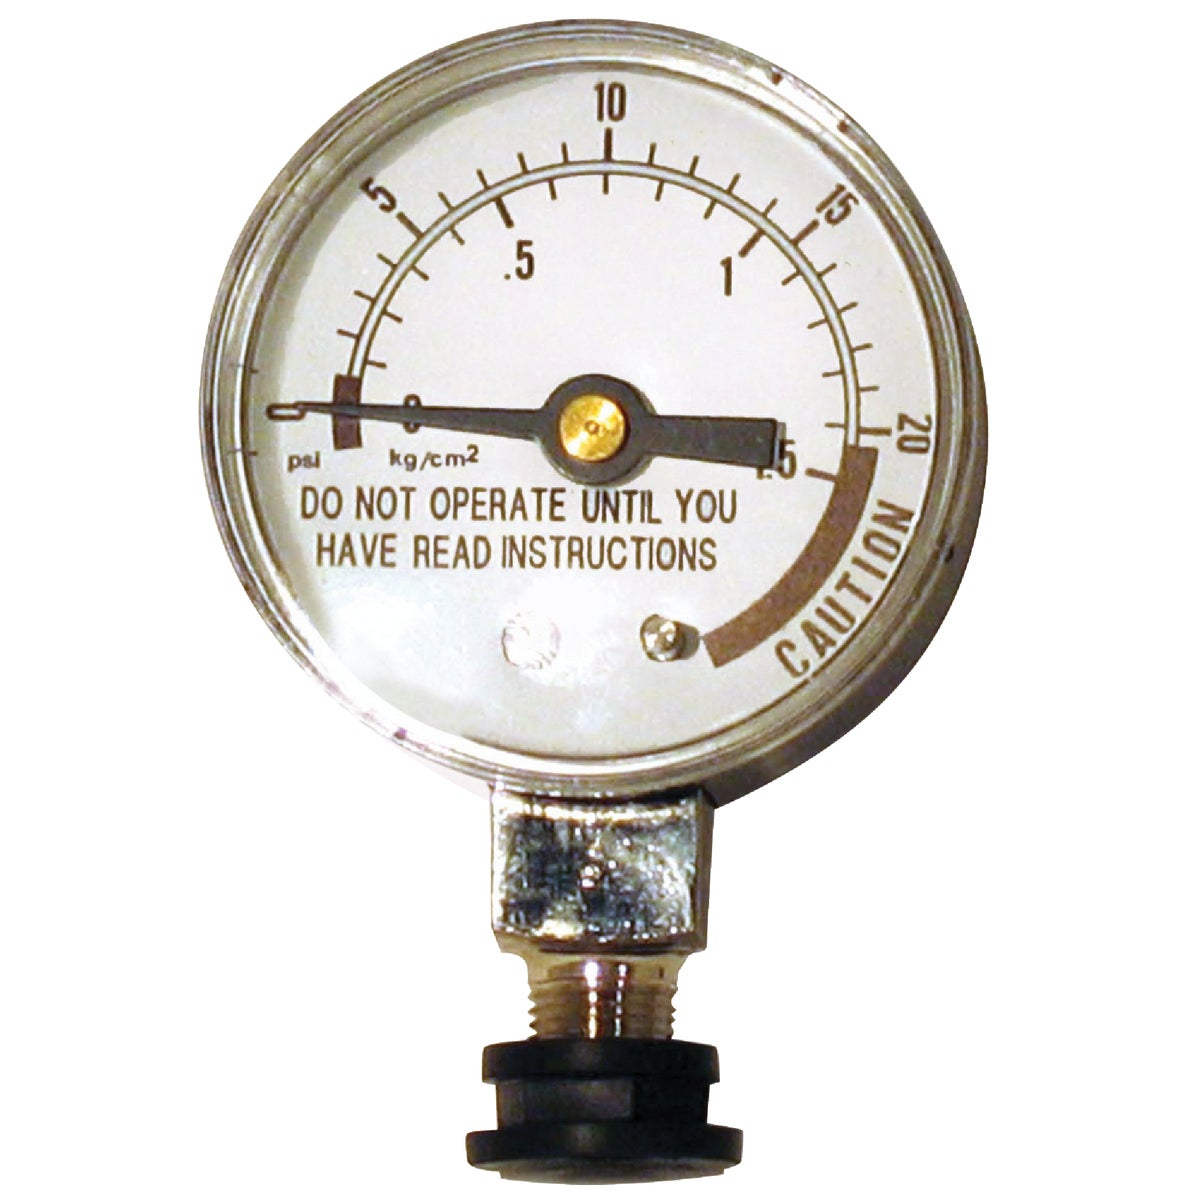 PRESSURE GAUGE - 85729 by National Presto